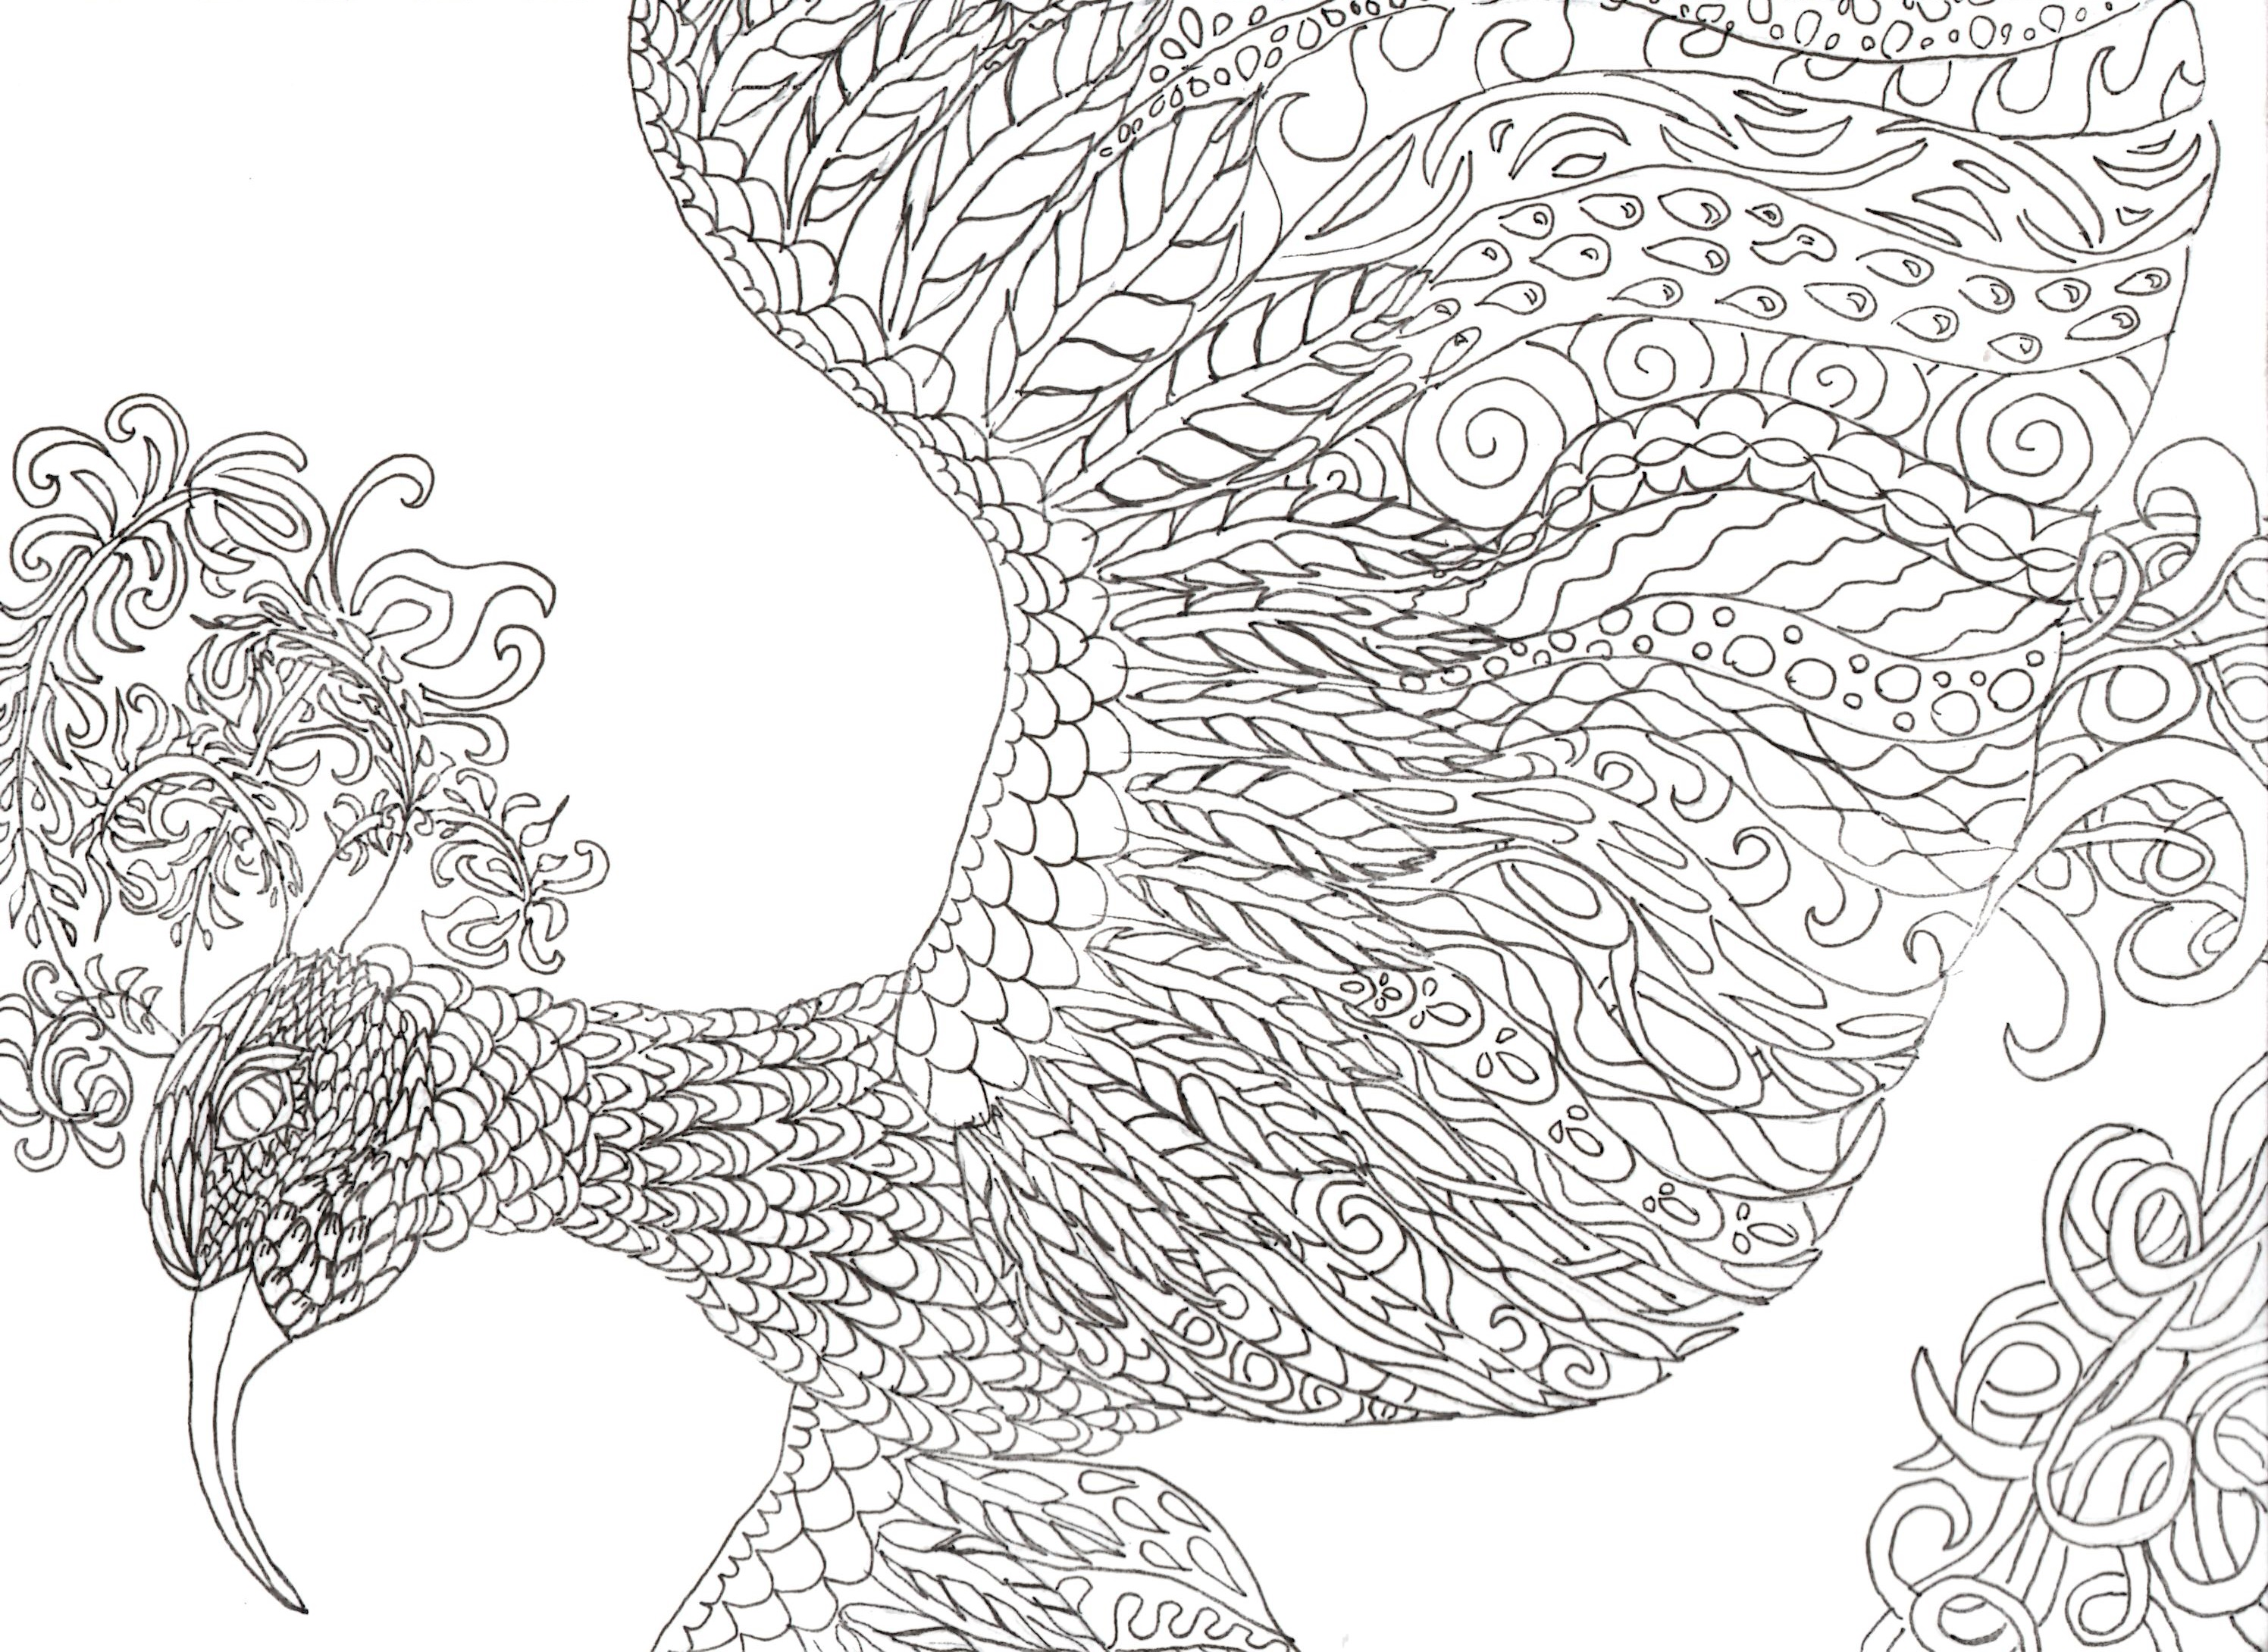 fantasy bird - Fantasy Coloring Books For Adults